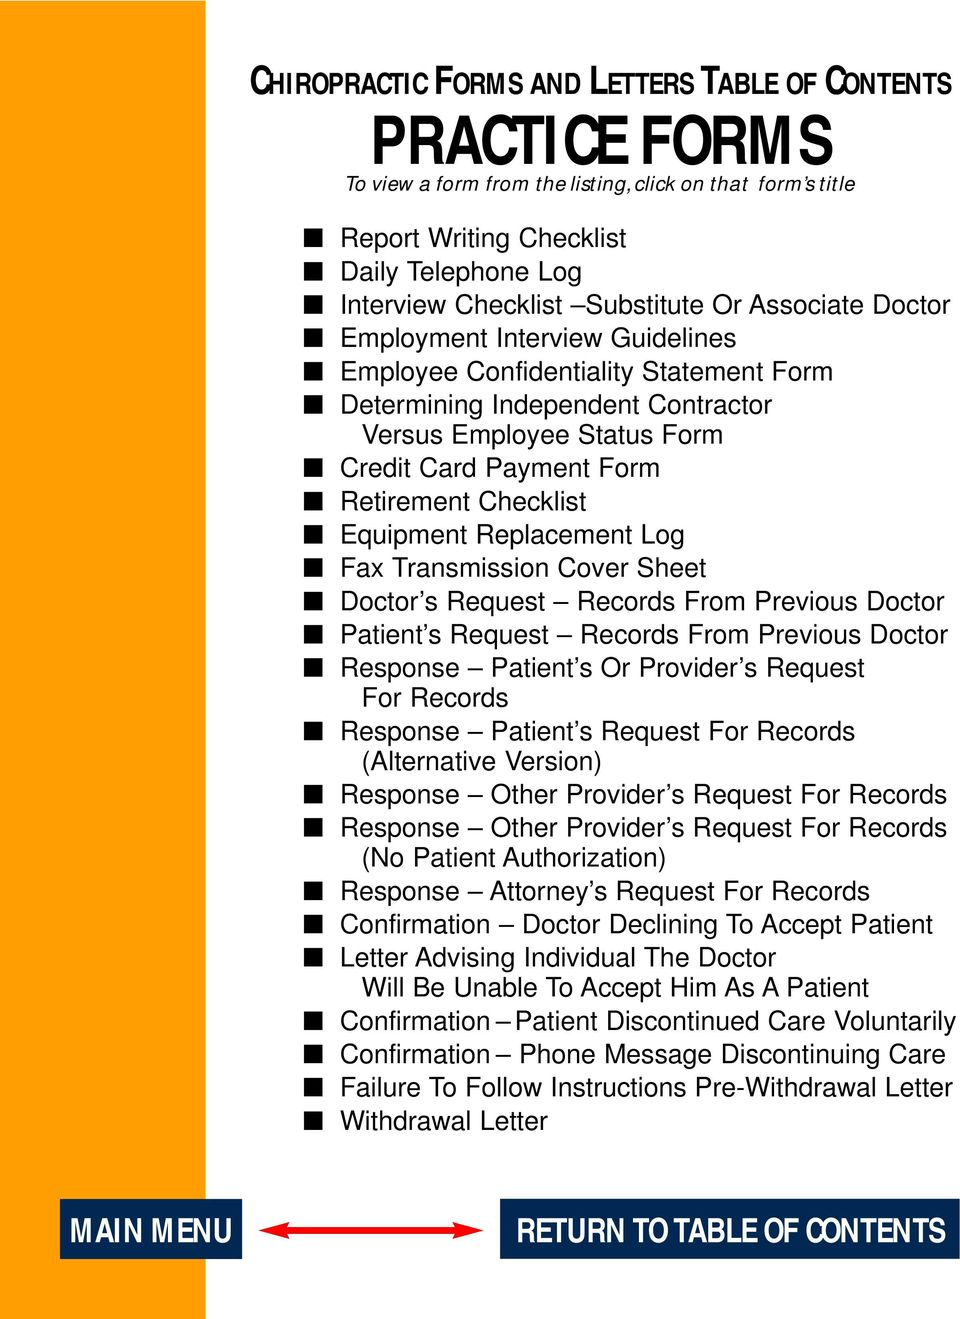 Checklist Equipment Replacement Log Fax Transmission Cover Sheet Doctor s Request Records From Previous Doctor Patient s Request Records From Previous Doctor Response Patient s Or Provider s Request